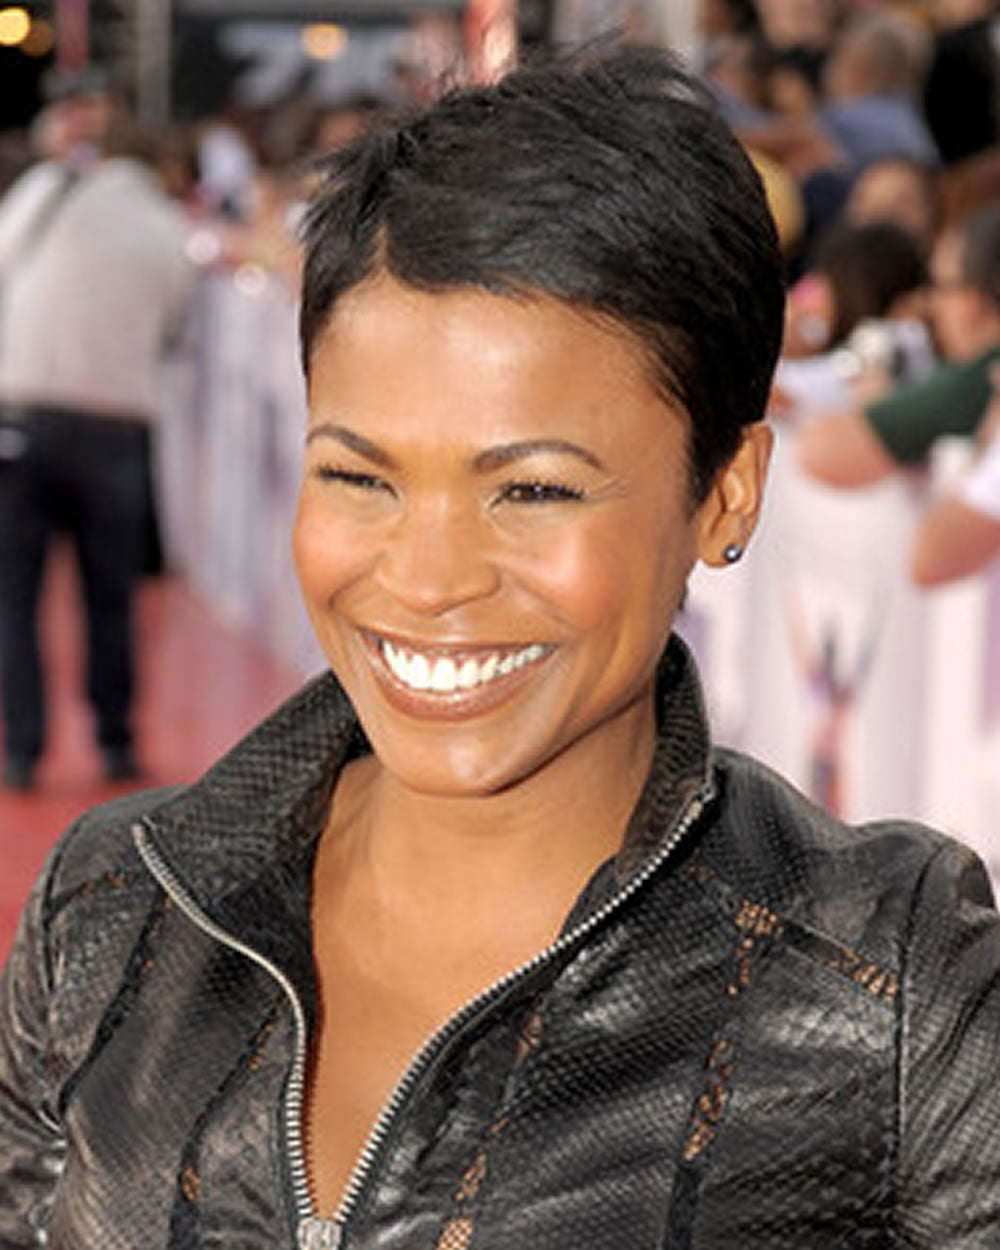 Black Short Pixie Hairstyles 2018 The Cupboard for Your Home